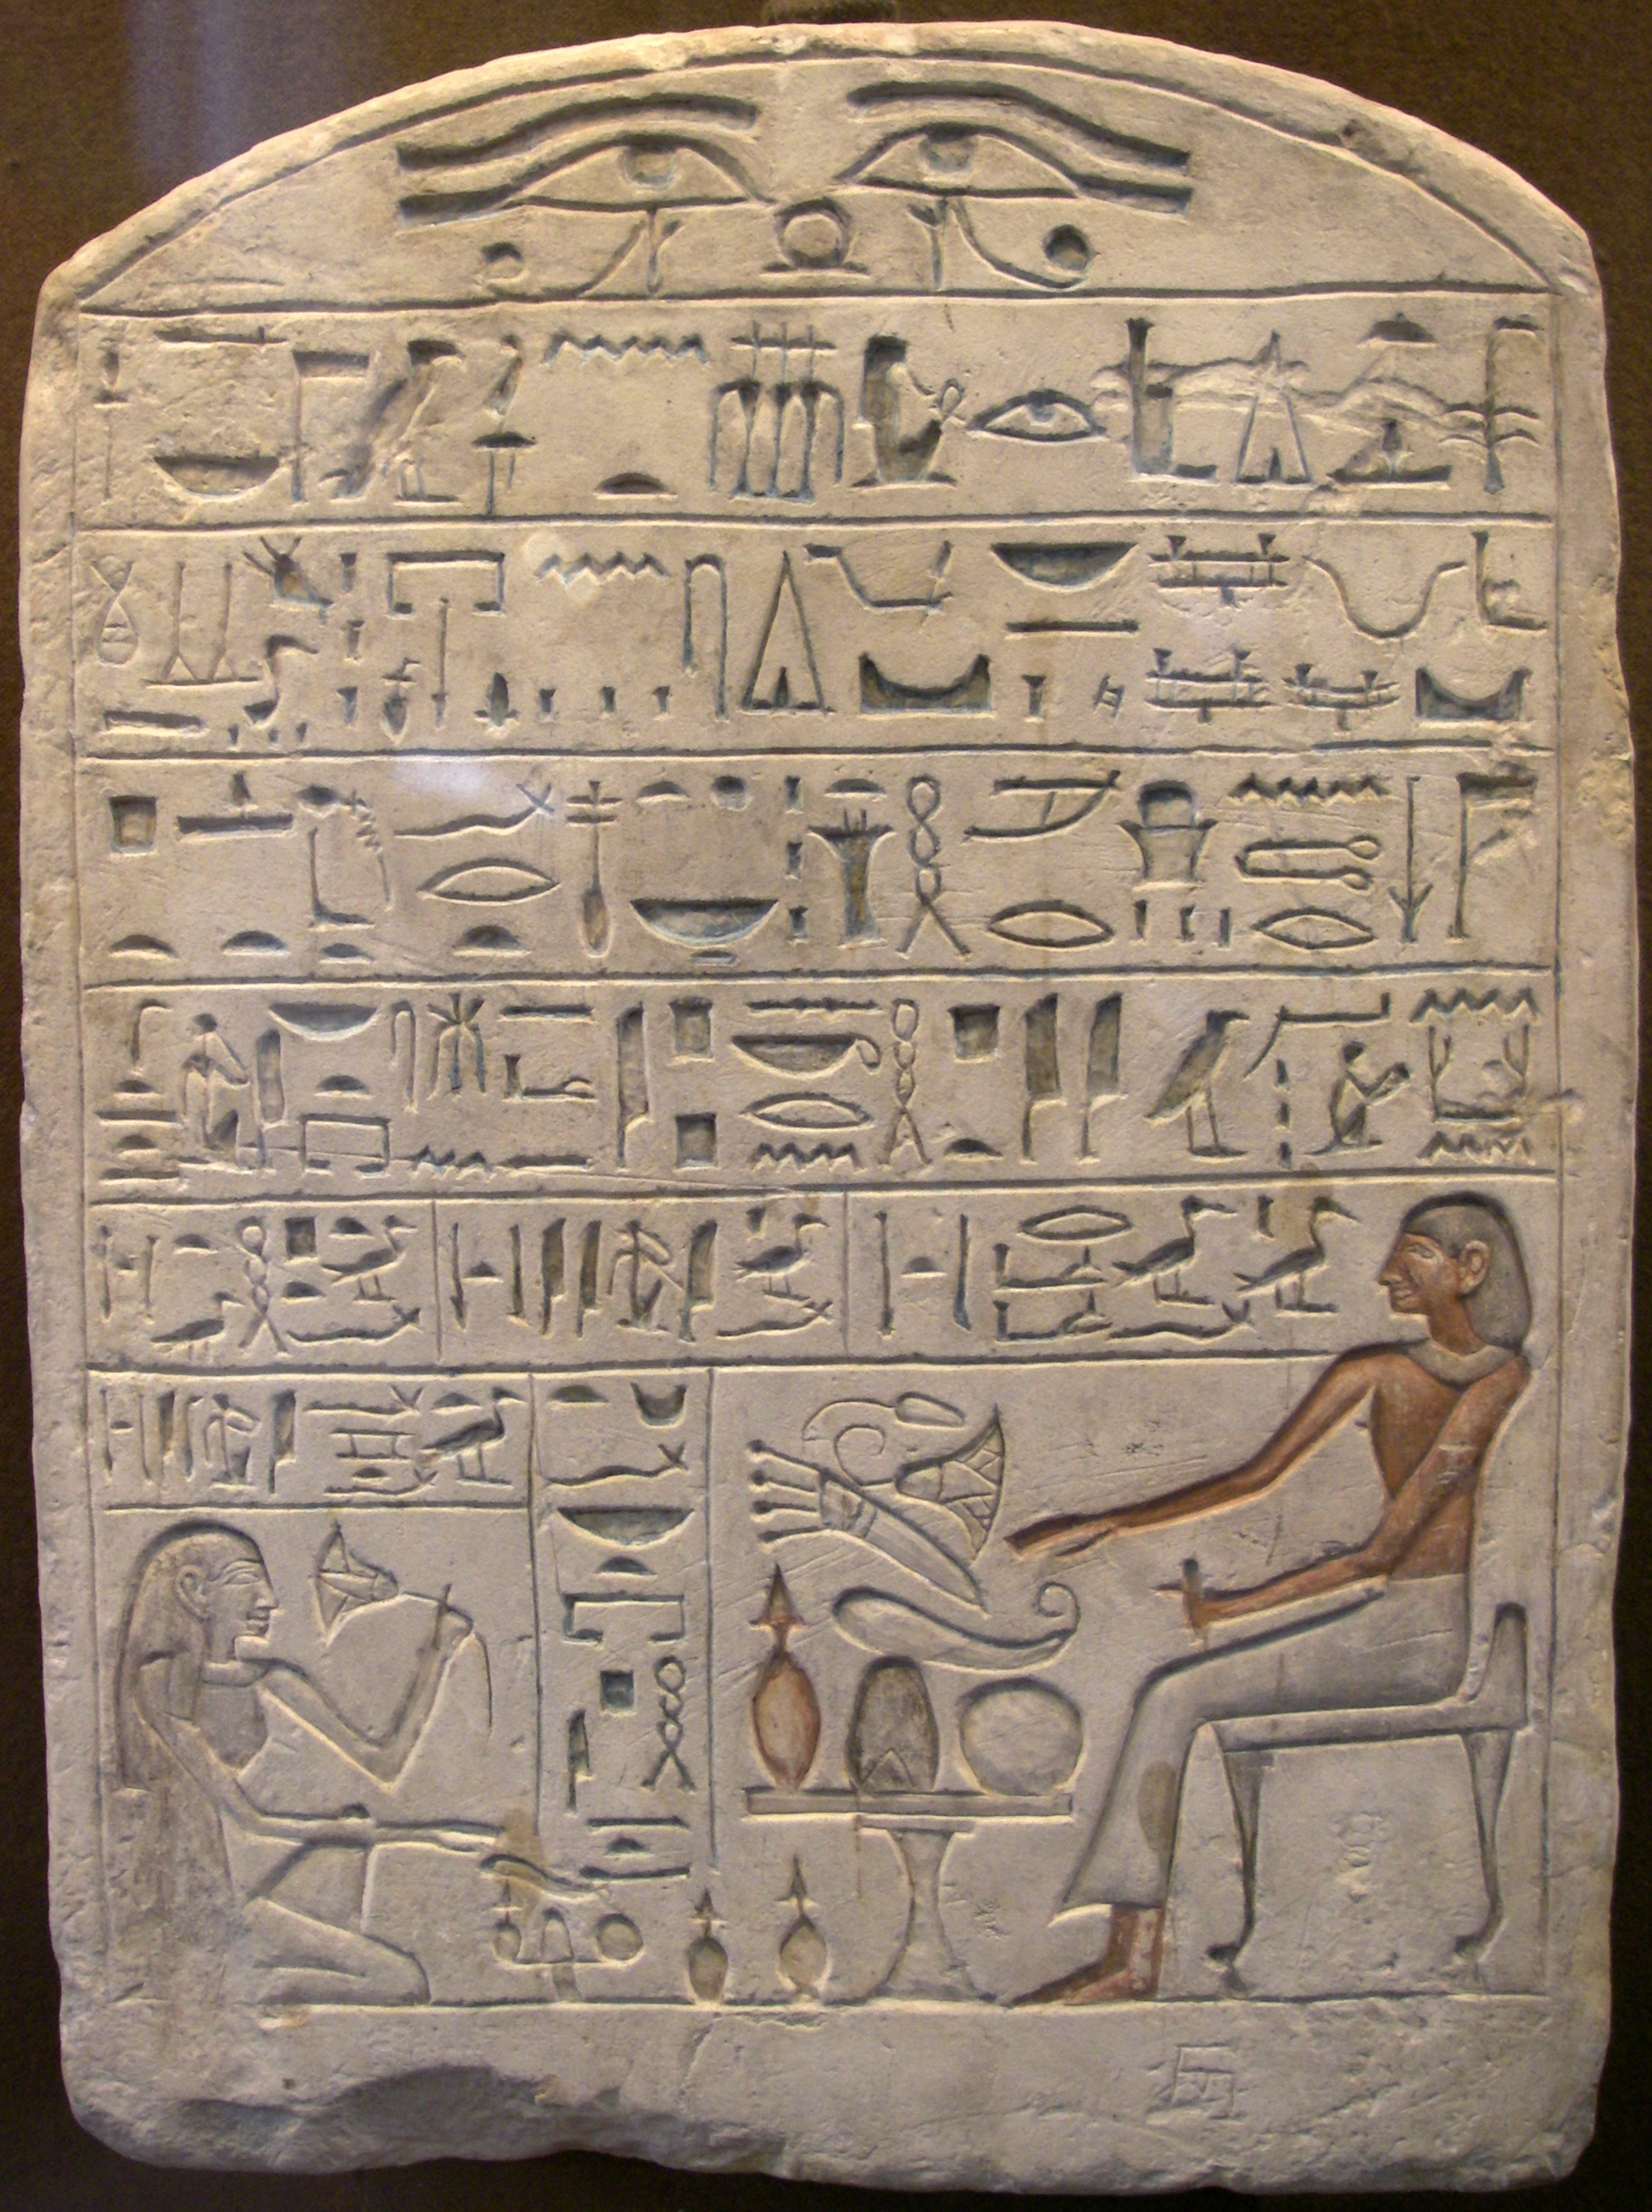 Ancient Egyptian offering formula - Wikipedia